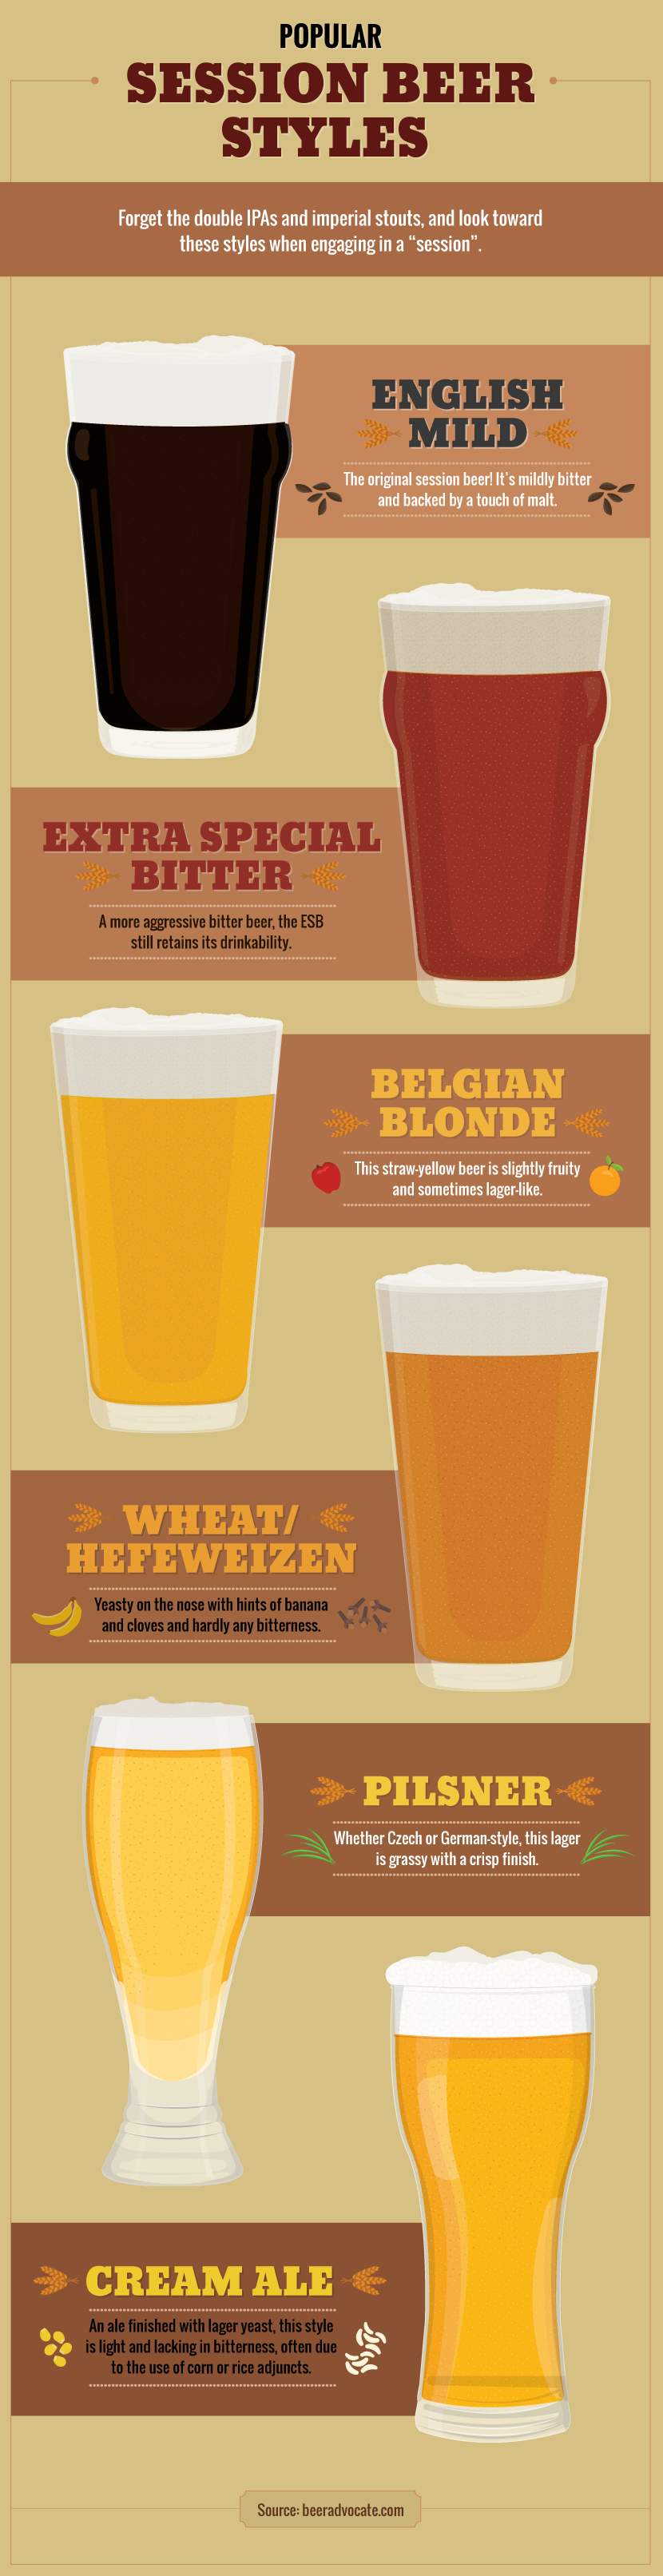 Most Popular Sessionable Beer Styles - What Makes Beer Sessionable?